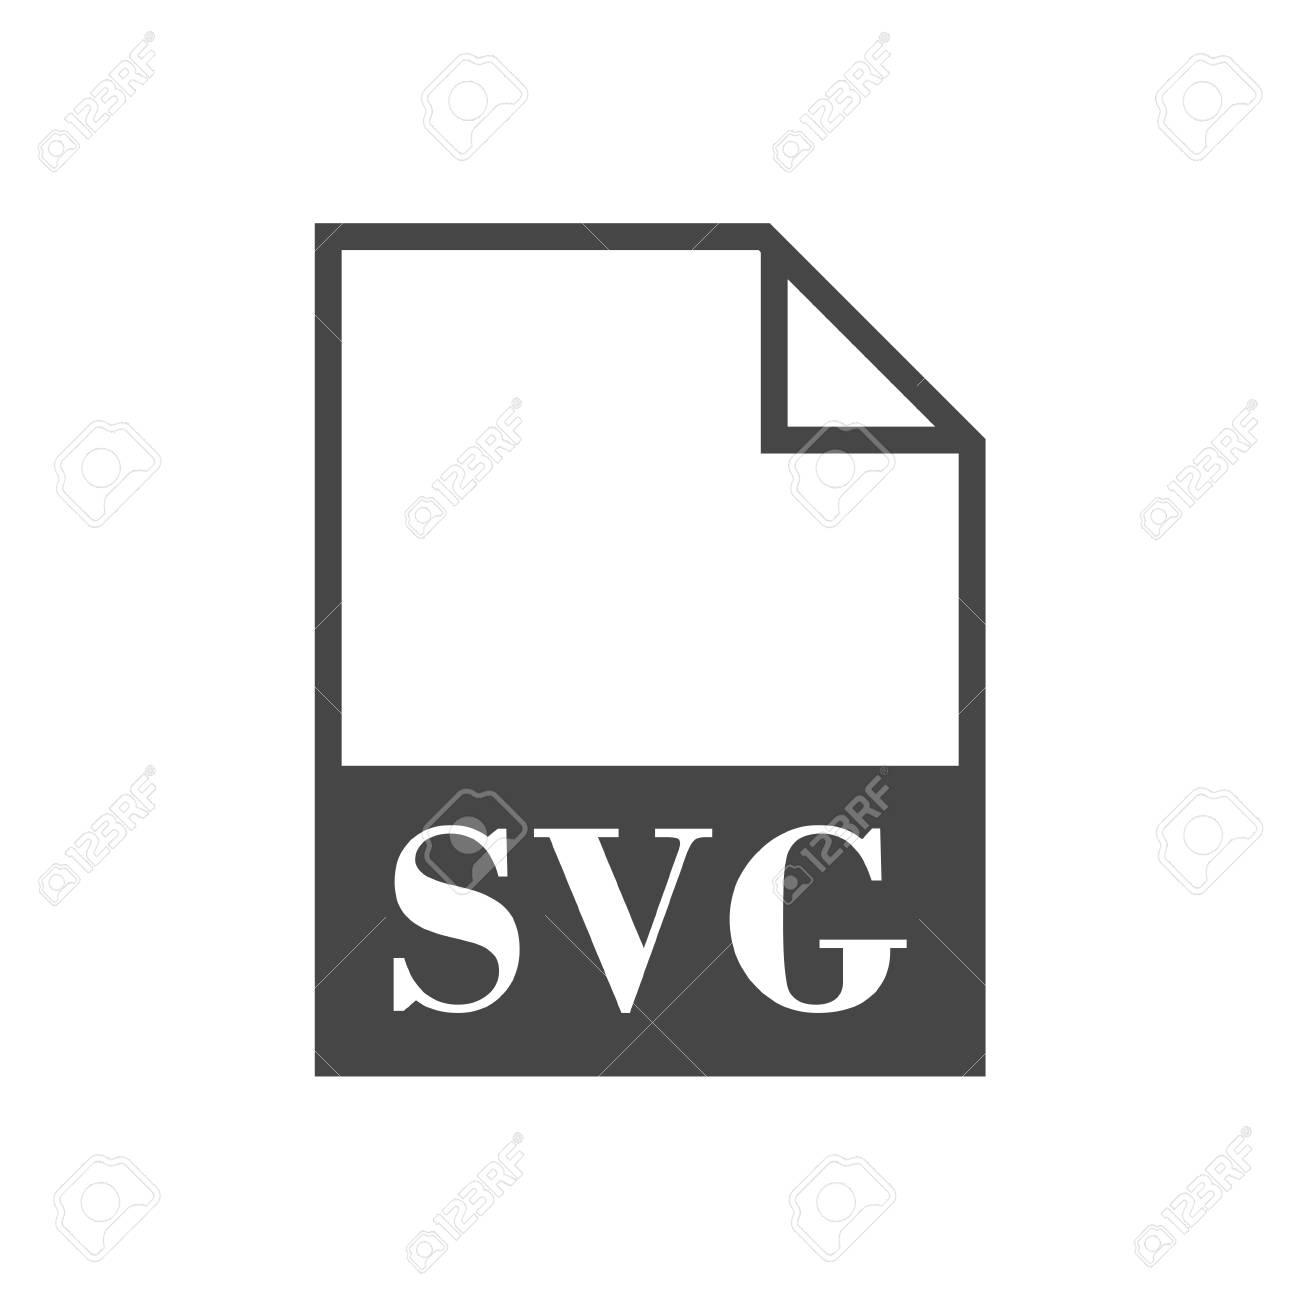 SVG file icon with long shadow Stock Vector - 56625370